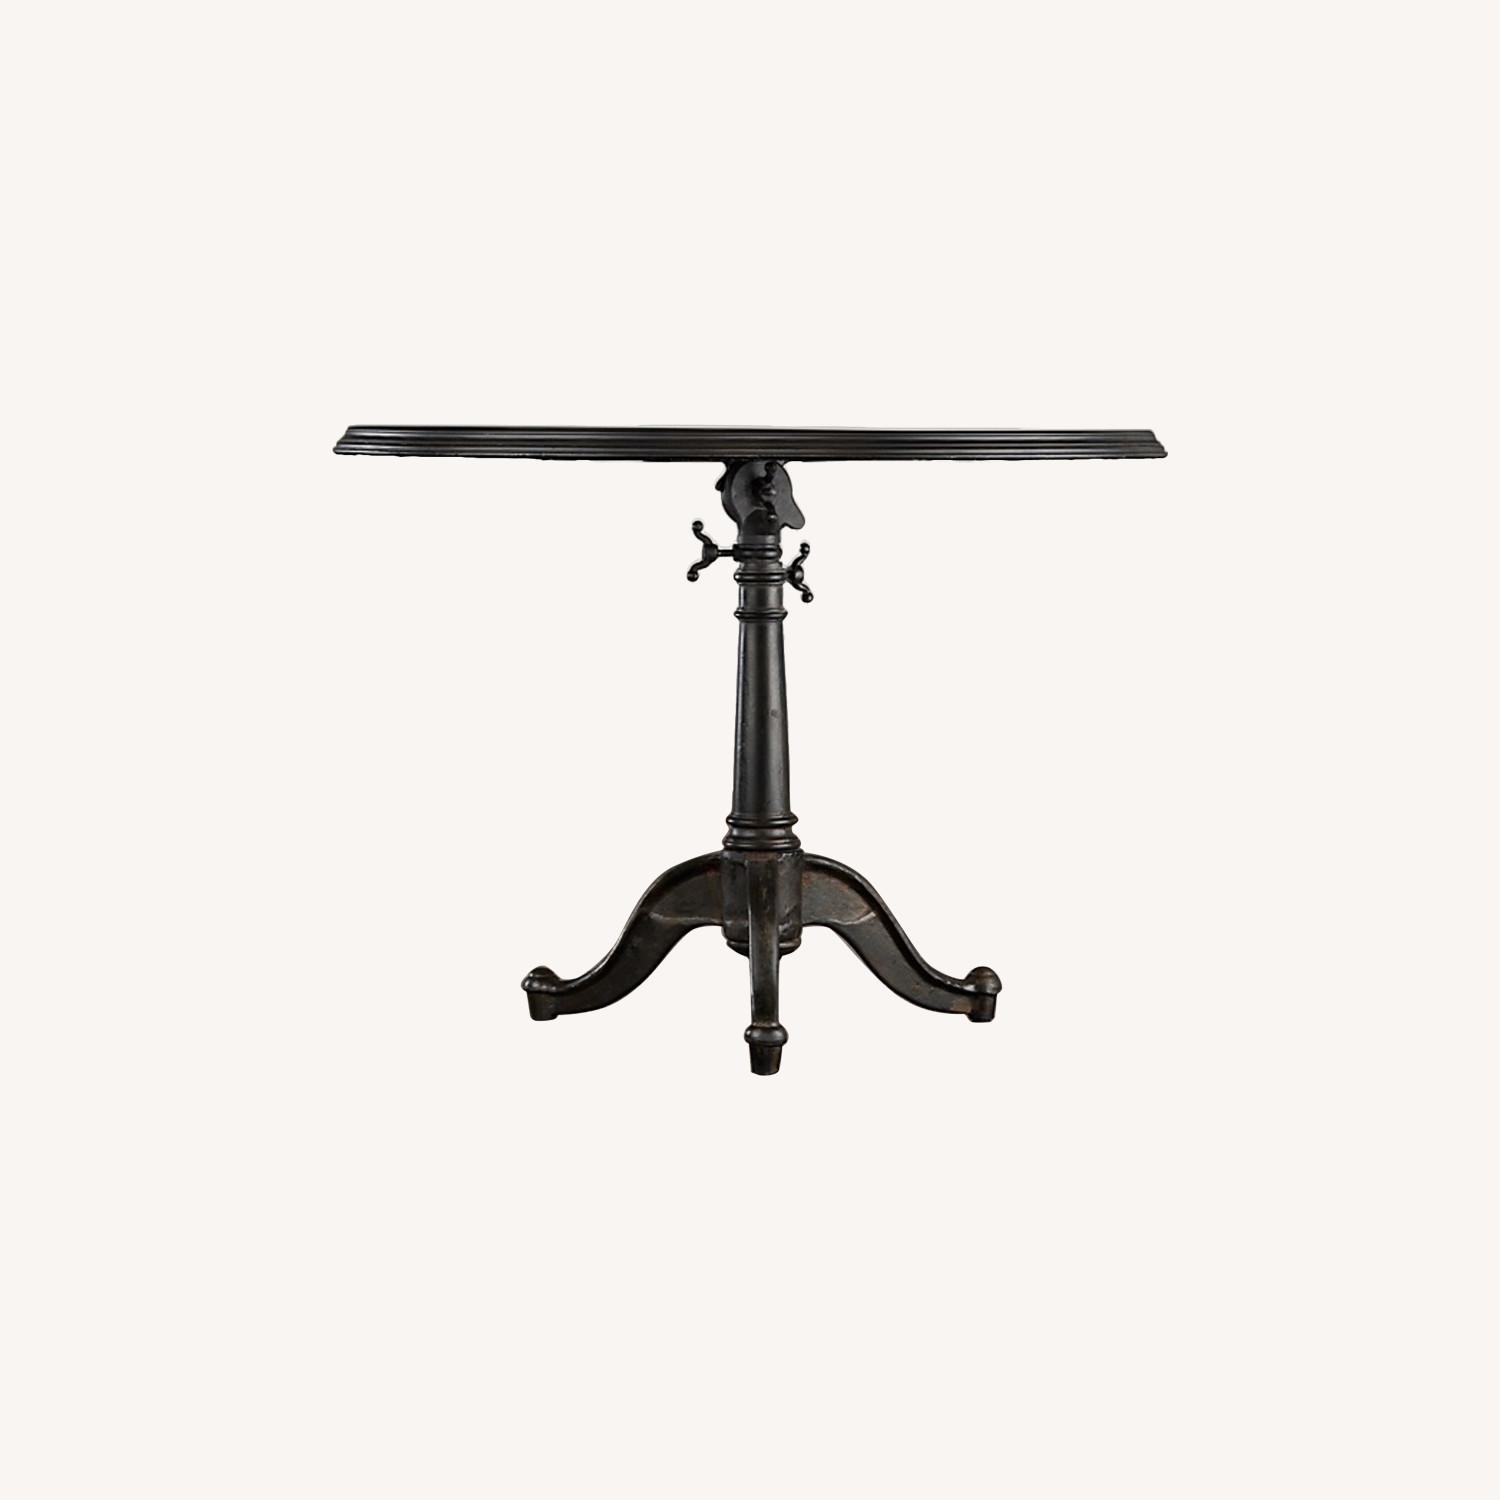 Restoration Hardware Dining Table with 2 Chairs - image-0